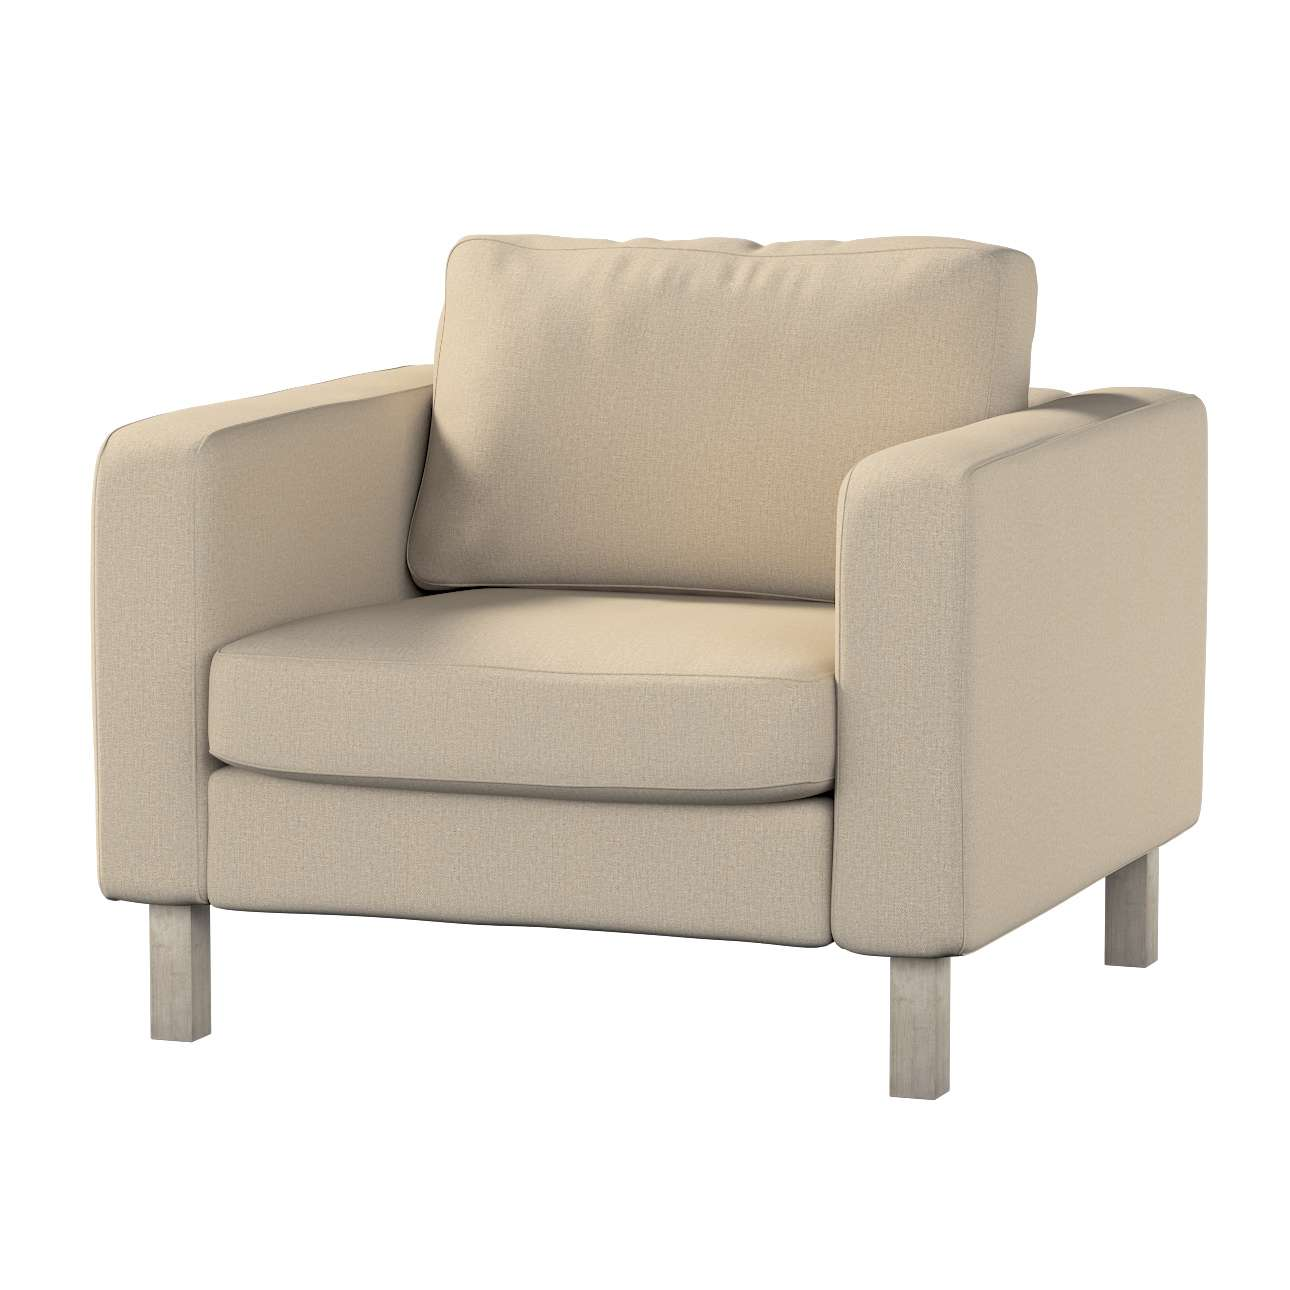 Karlstad armchair cover Karlstad armchair cover in collection Edinburgh, fabric: 115-78